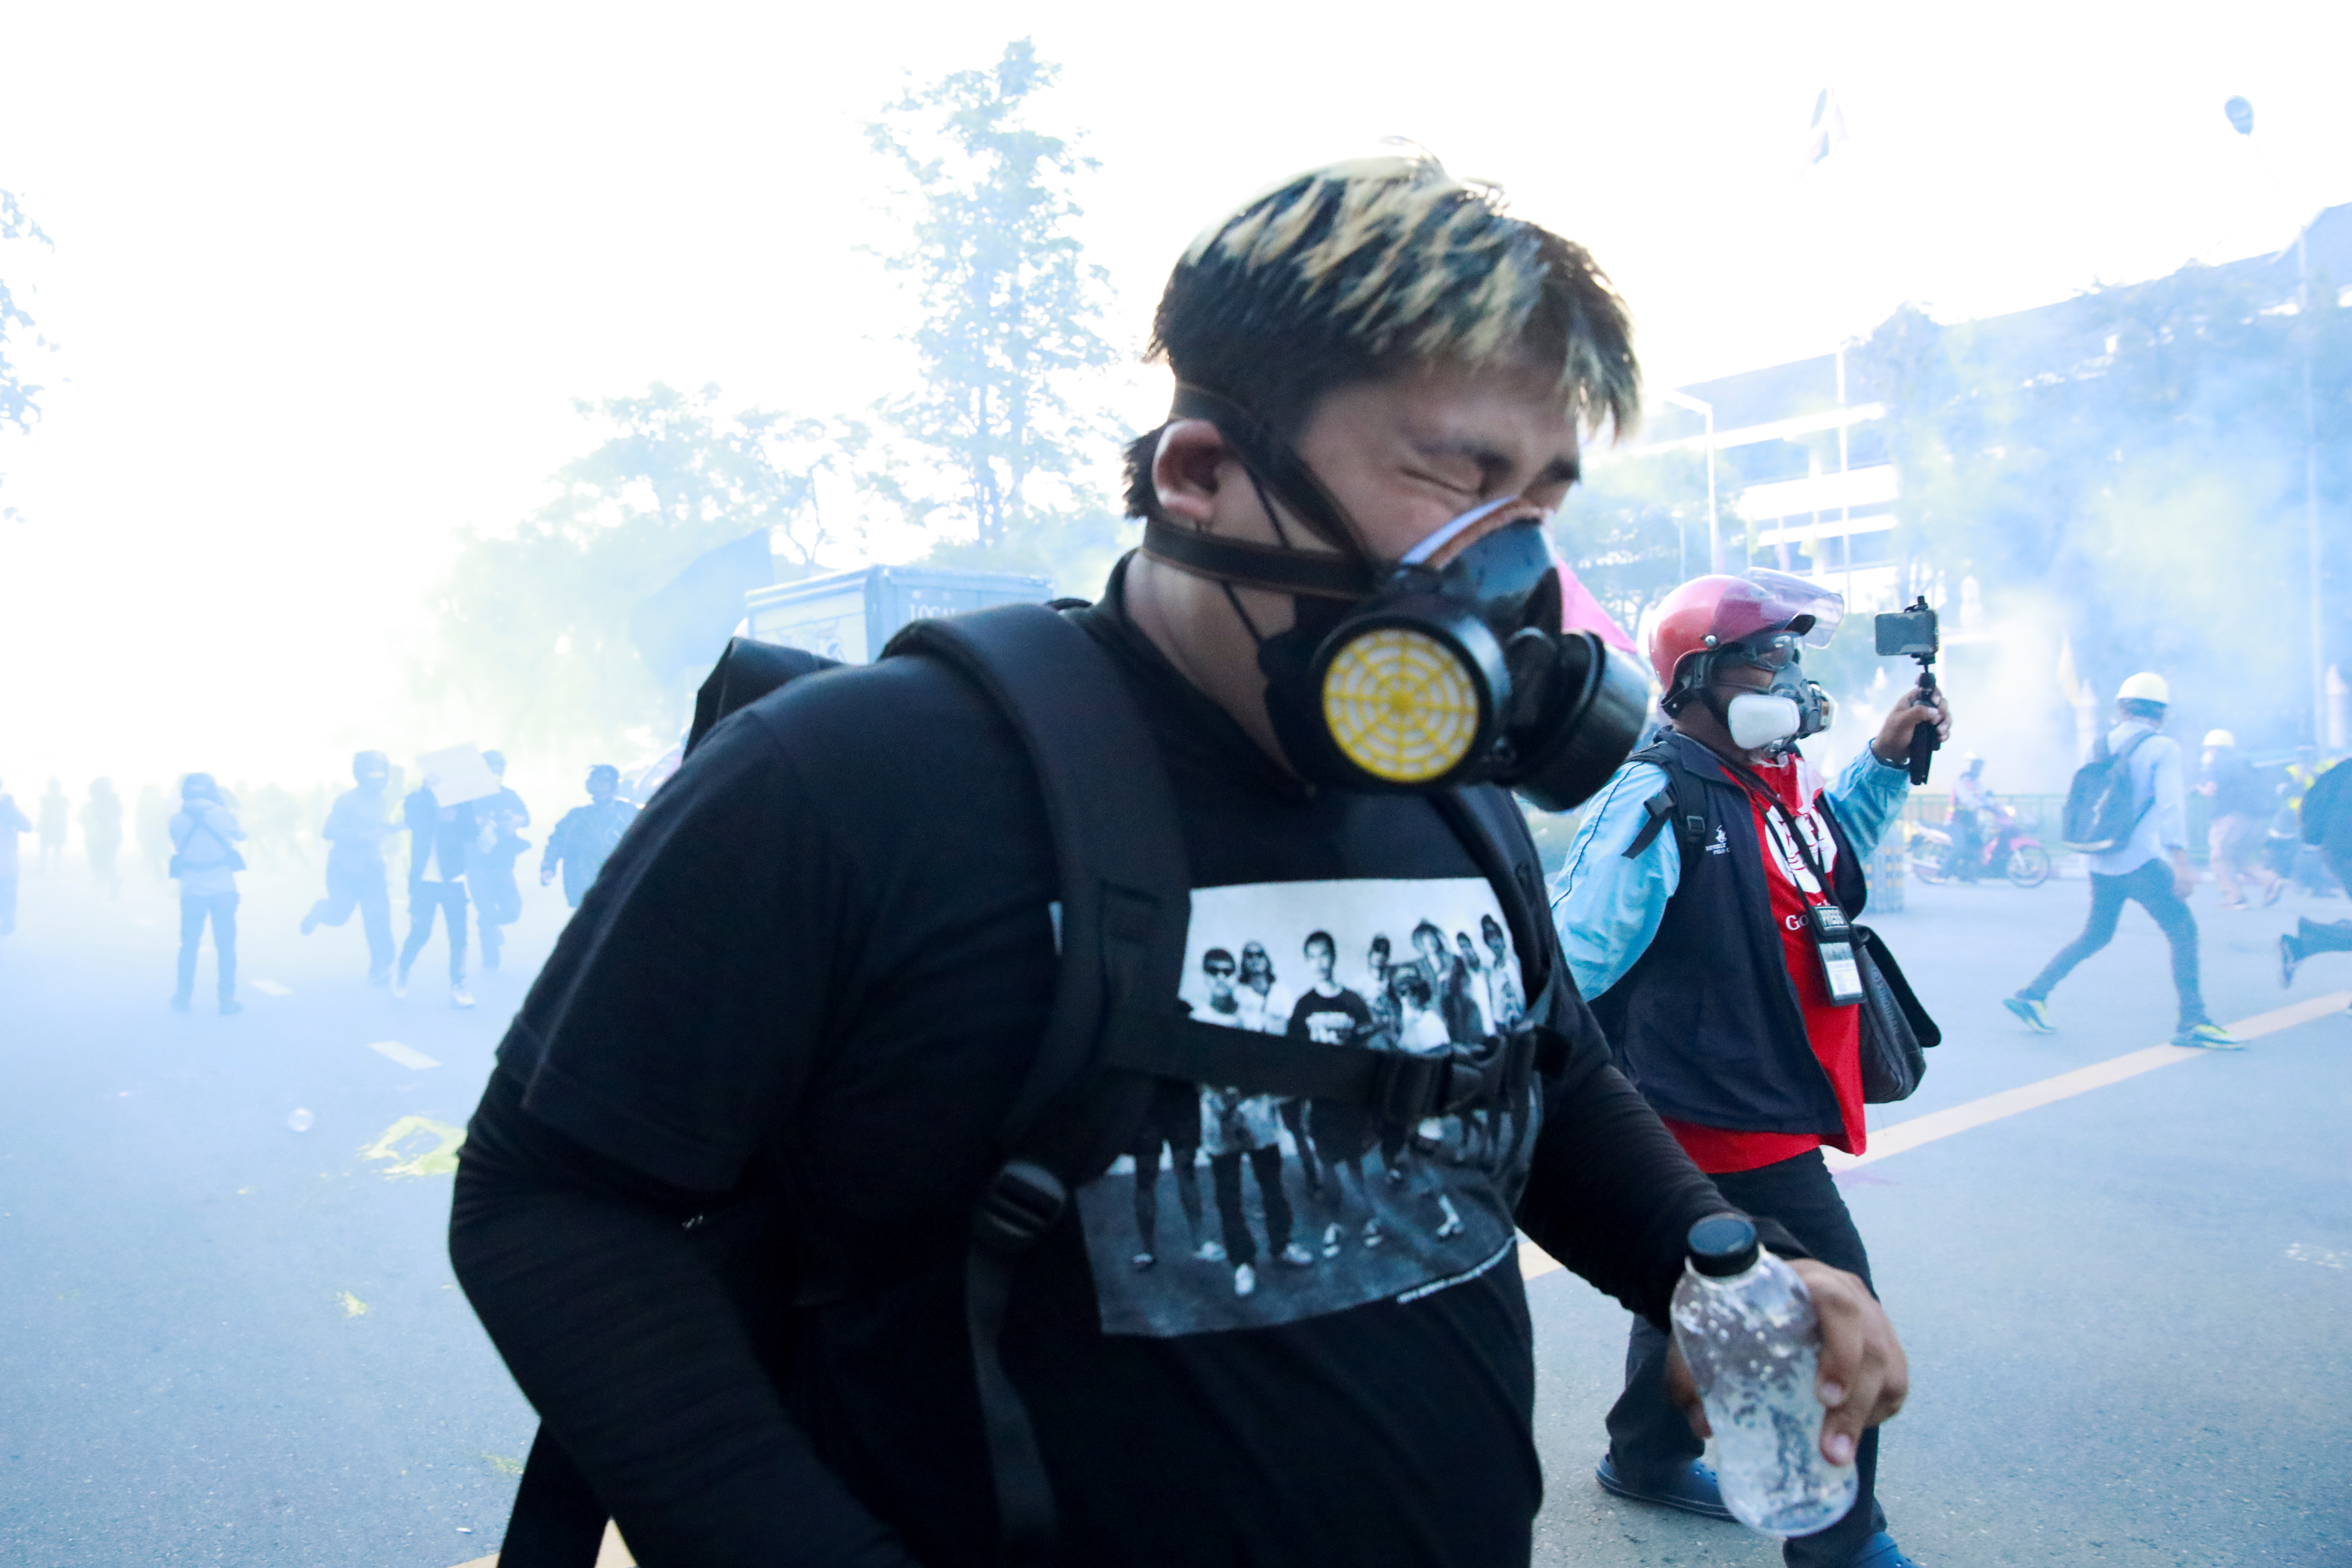 A man reacts among tear gas during a protest over the government's handling of the coronavirus disease (COVID-19) pandemic, in Bangkok, Thailand, August 16, 2021. REUTERS/Soe Zeya Tun